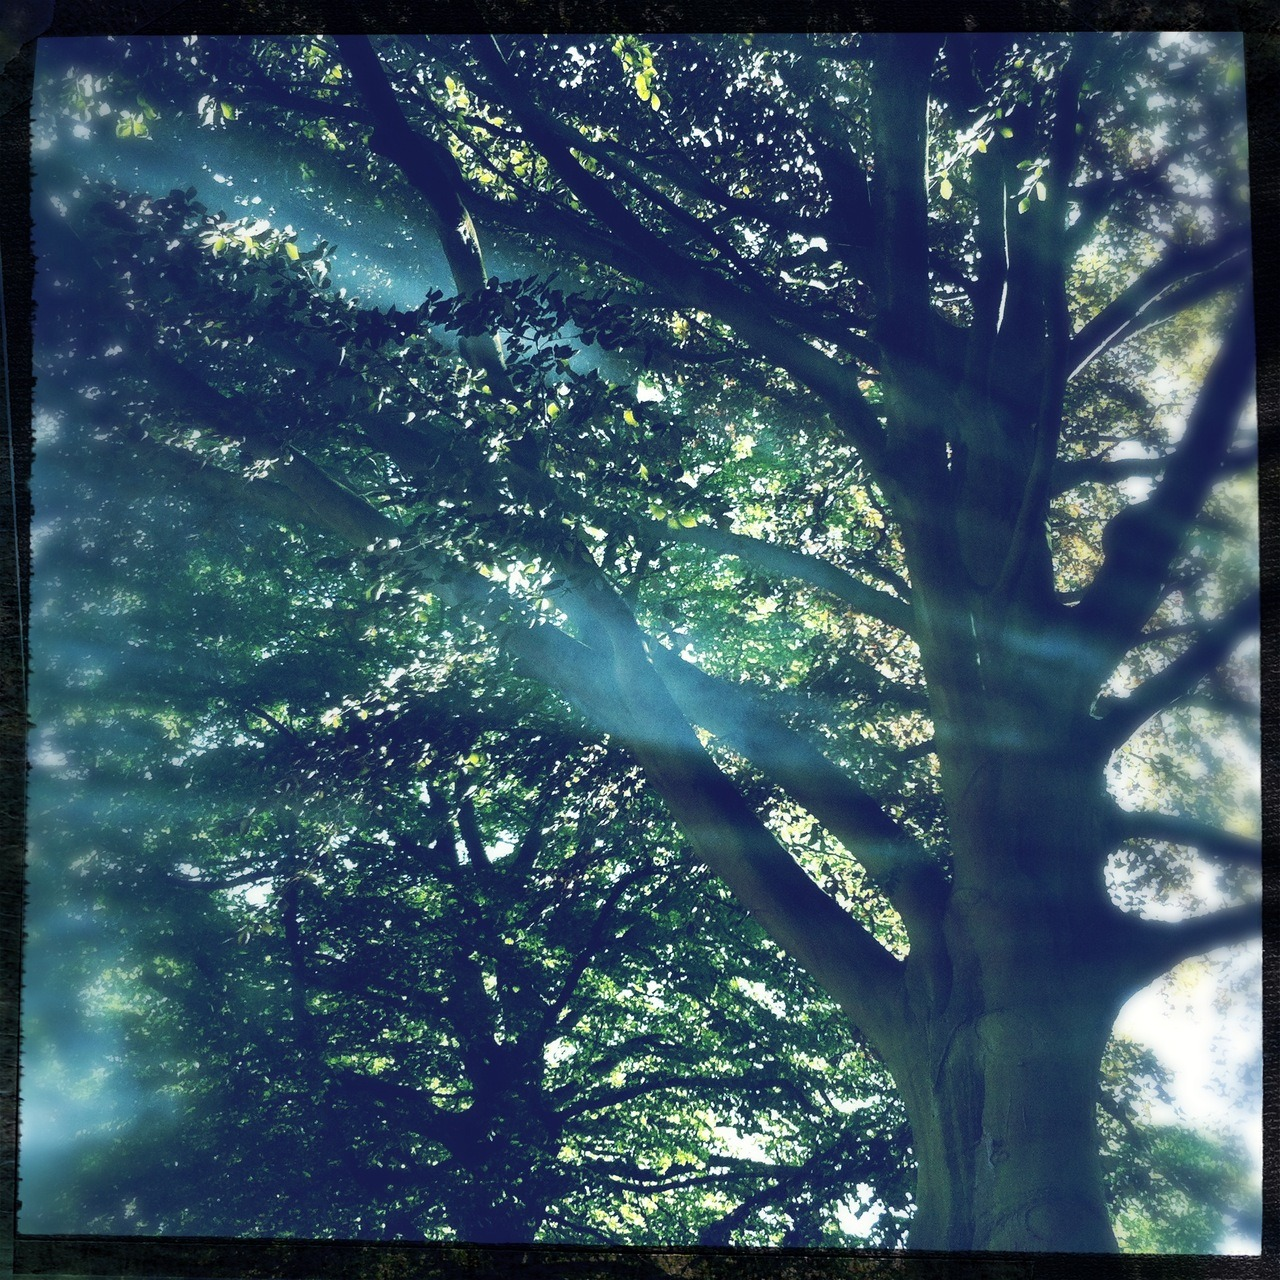 #trees #mist #sun #evening #summer Americana Lens, Big Up Film, No Flash, Taken with Hipstamatic